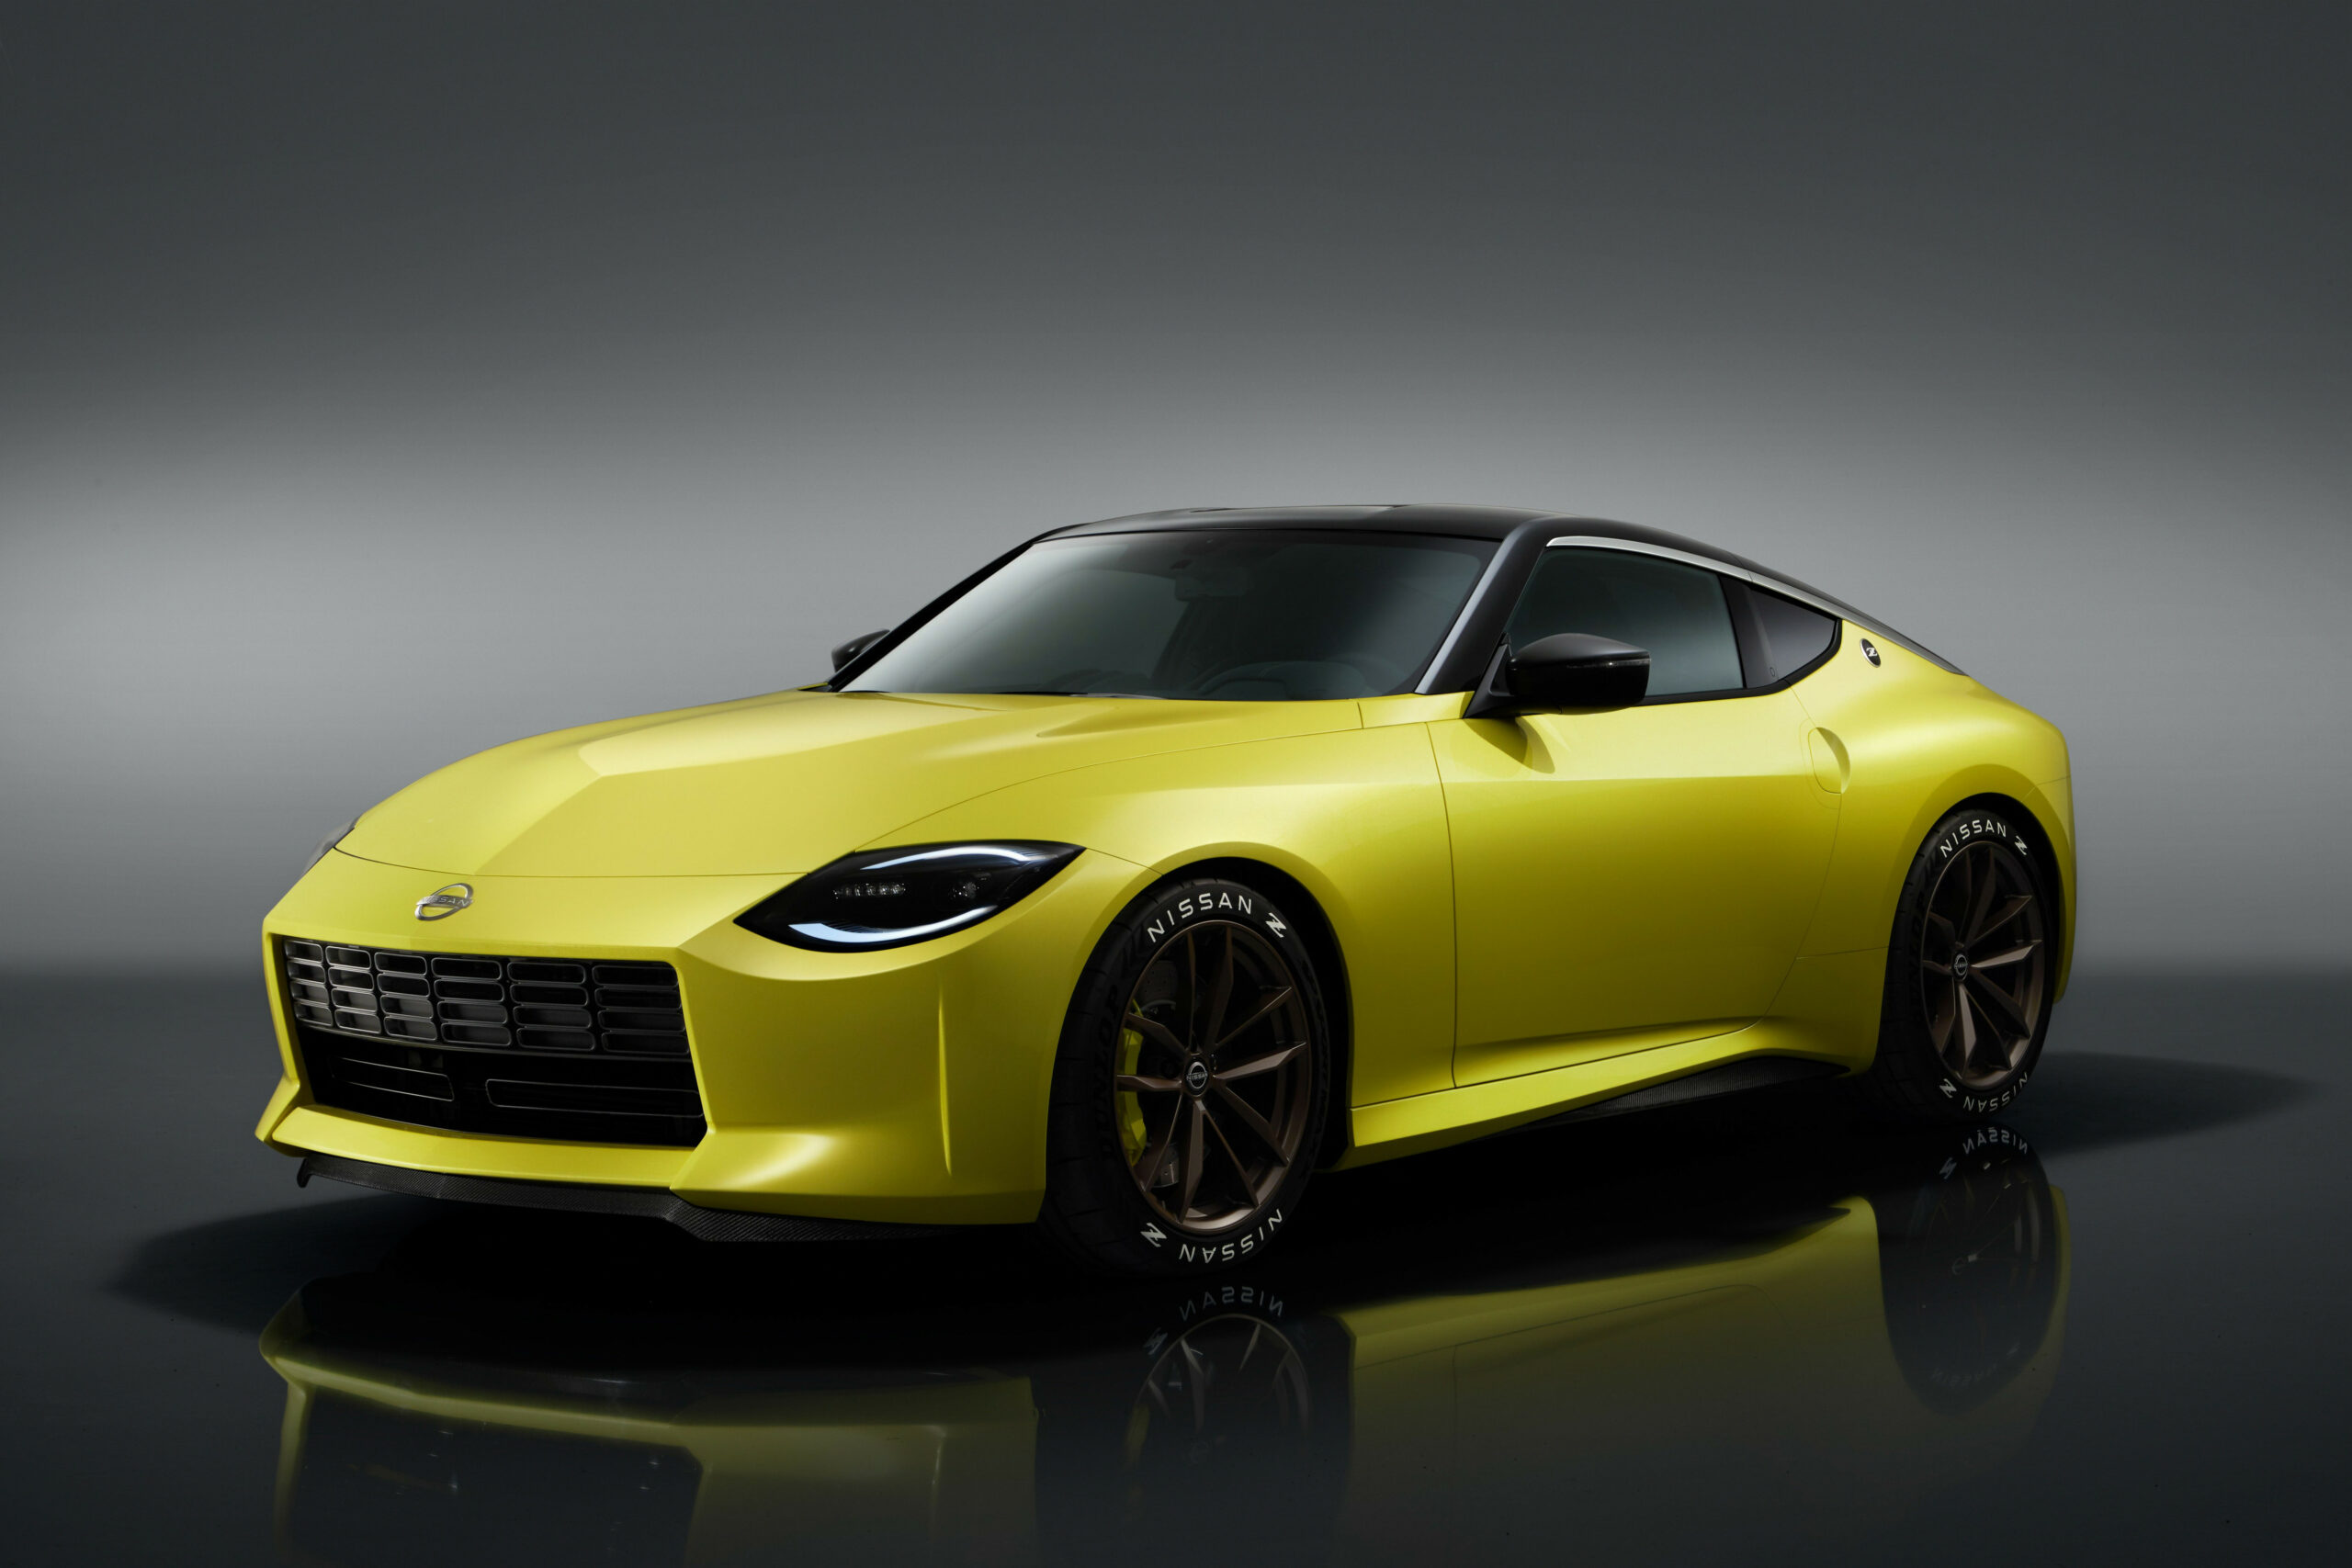 Redesign 2022 The Nissan Z35 Review